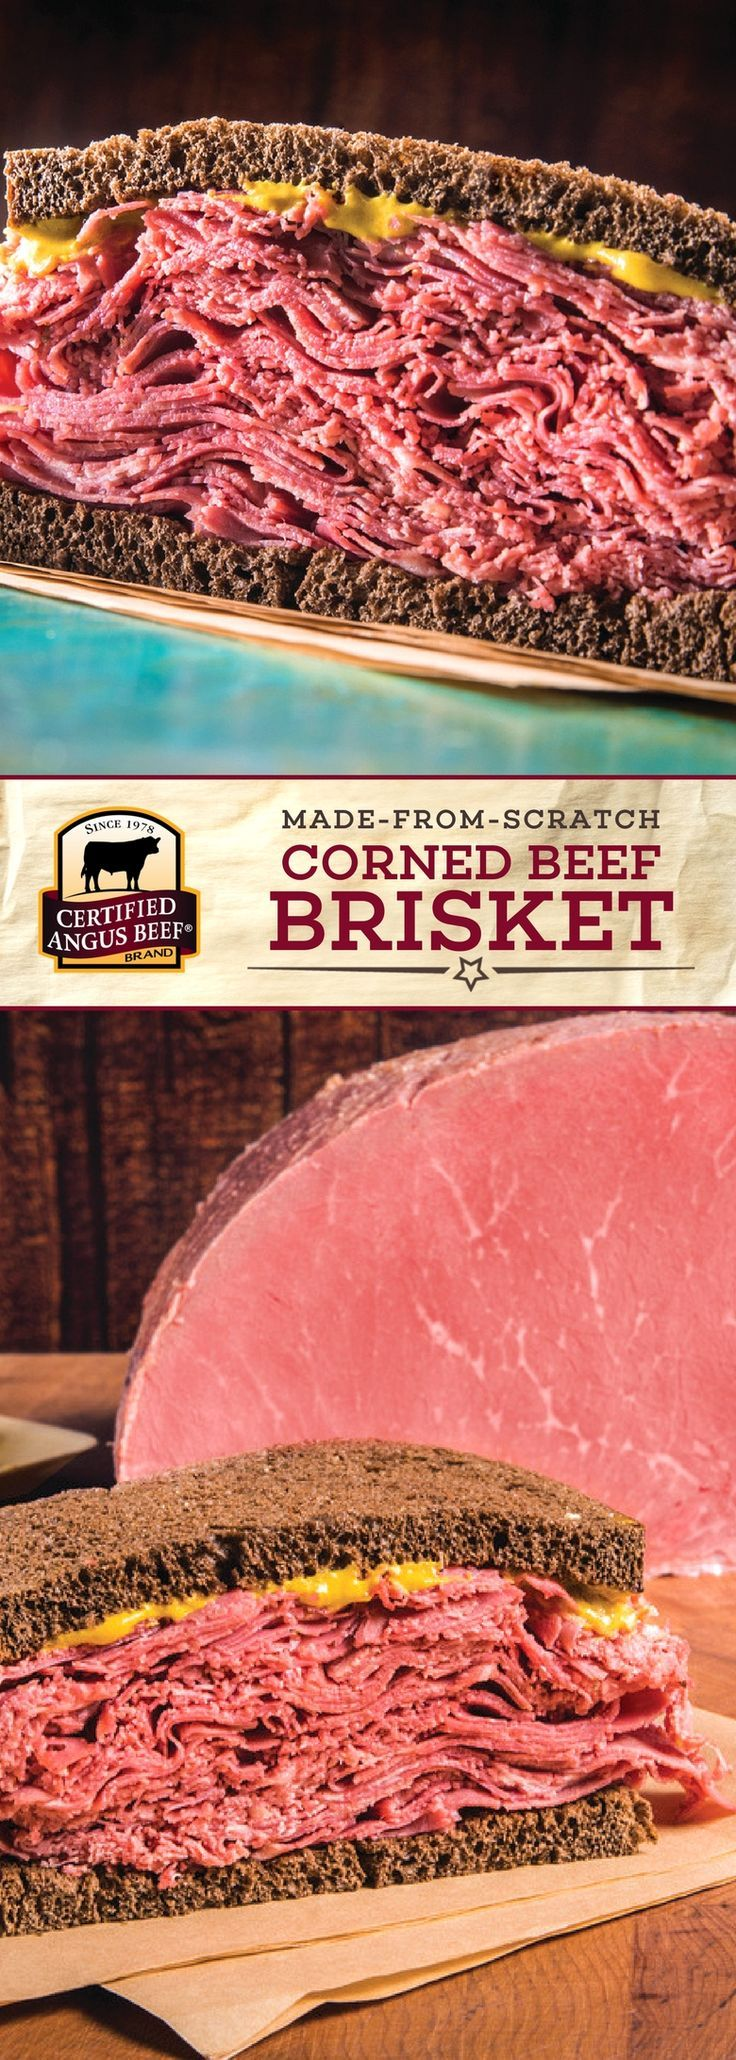 Certified Angus Beef®️️️️️️ brand Made-from-Scratch Corned Beef Brisket is a flavor-packed dish, perfect for sandwiches or hash! This dish uses the best brisket flat and an ideal brine of spices for a melt-in-your-mouth delicious meal that you can make right in your SLOW COOKER.  #bestangusbeef #certifiedangusbeef #beefrecipe #slowcookerrecipes